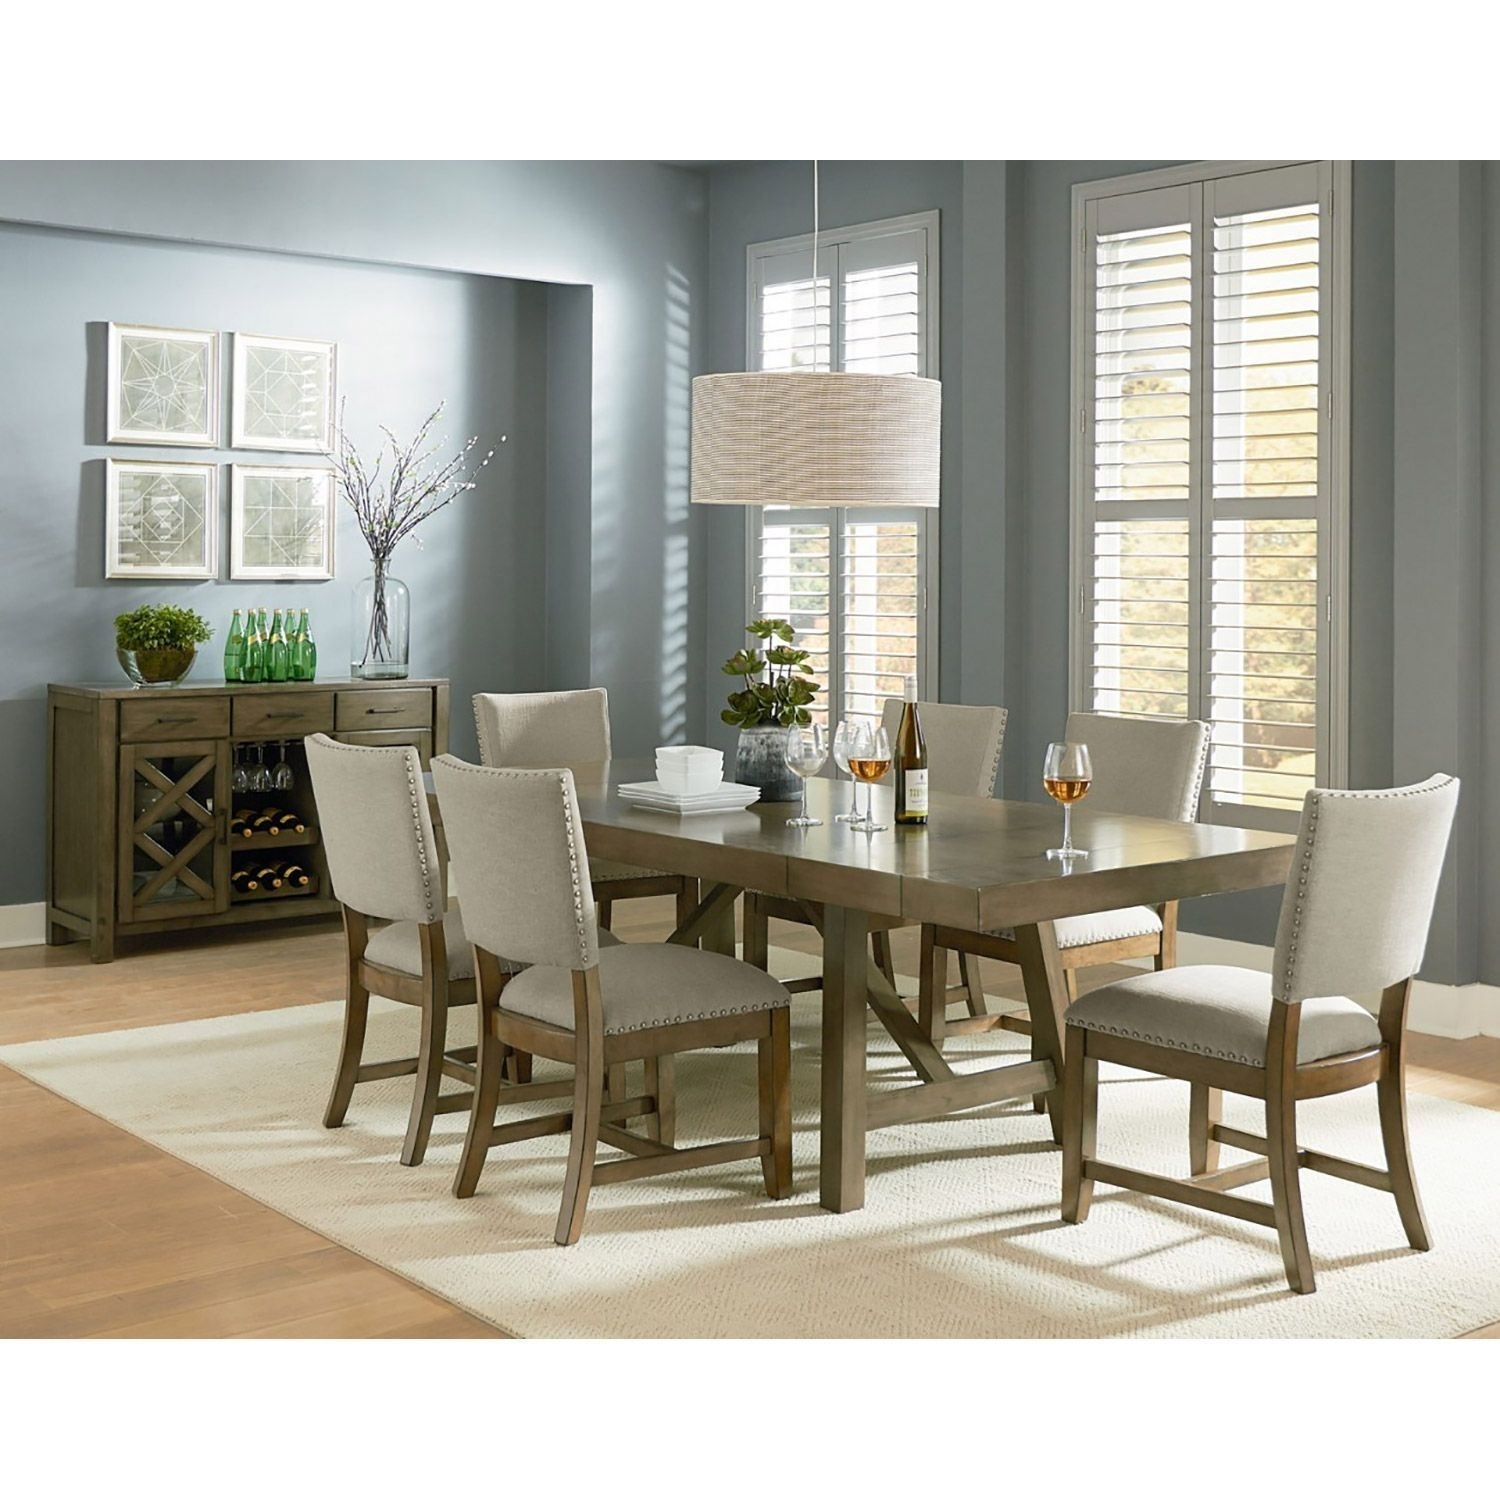 Omaha 7 Piece Dining Set 16681 7Pc | Standard Furniture 16681 1 For Most Recently Released Chandler 7 Piece Extension Dining Sets With Fabric Side Chairs (View 6 of 20)